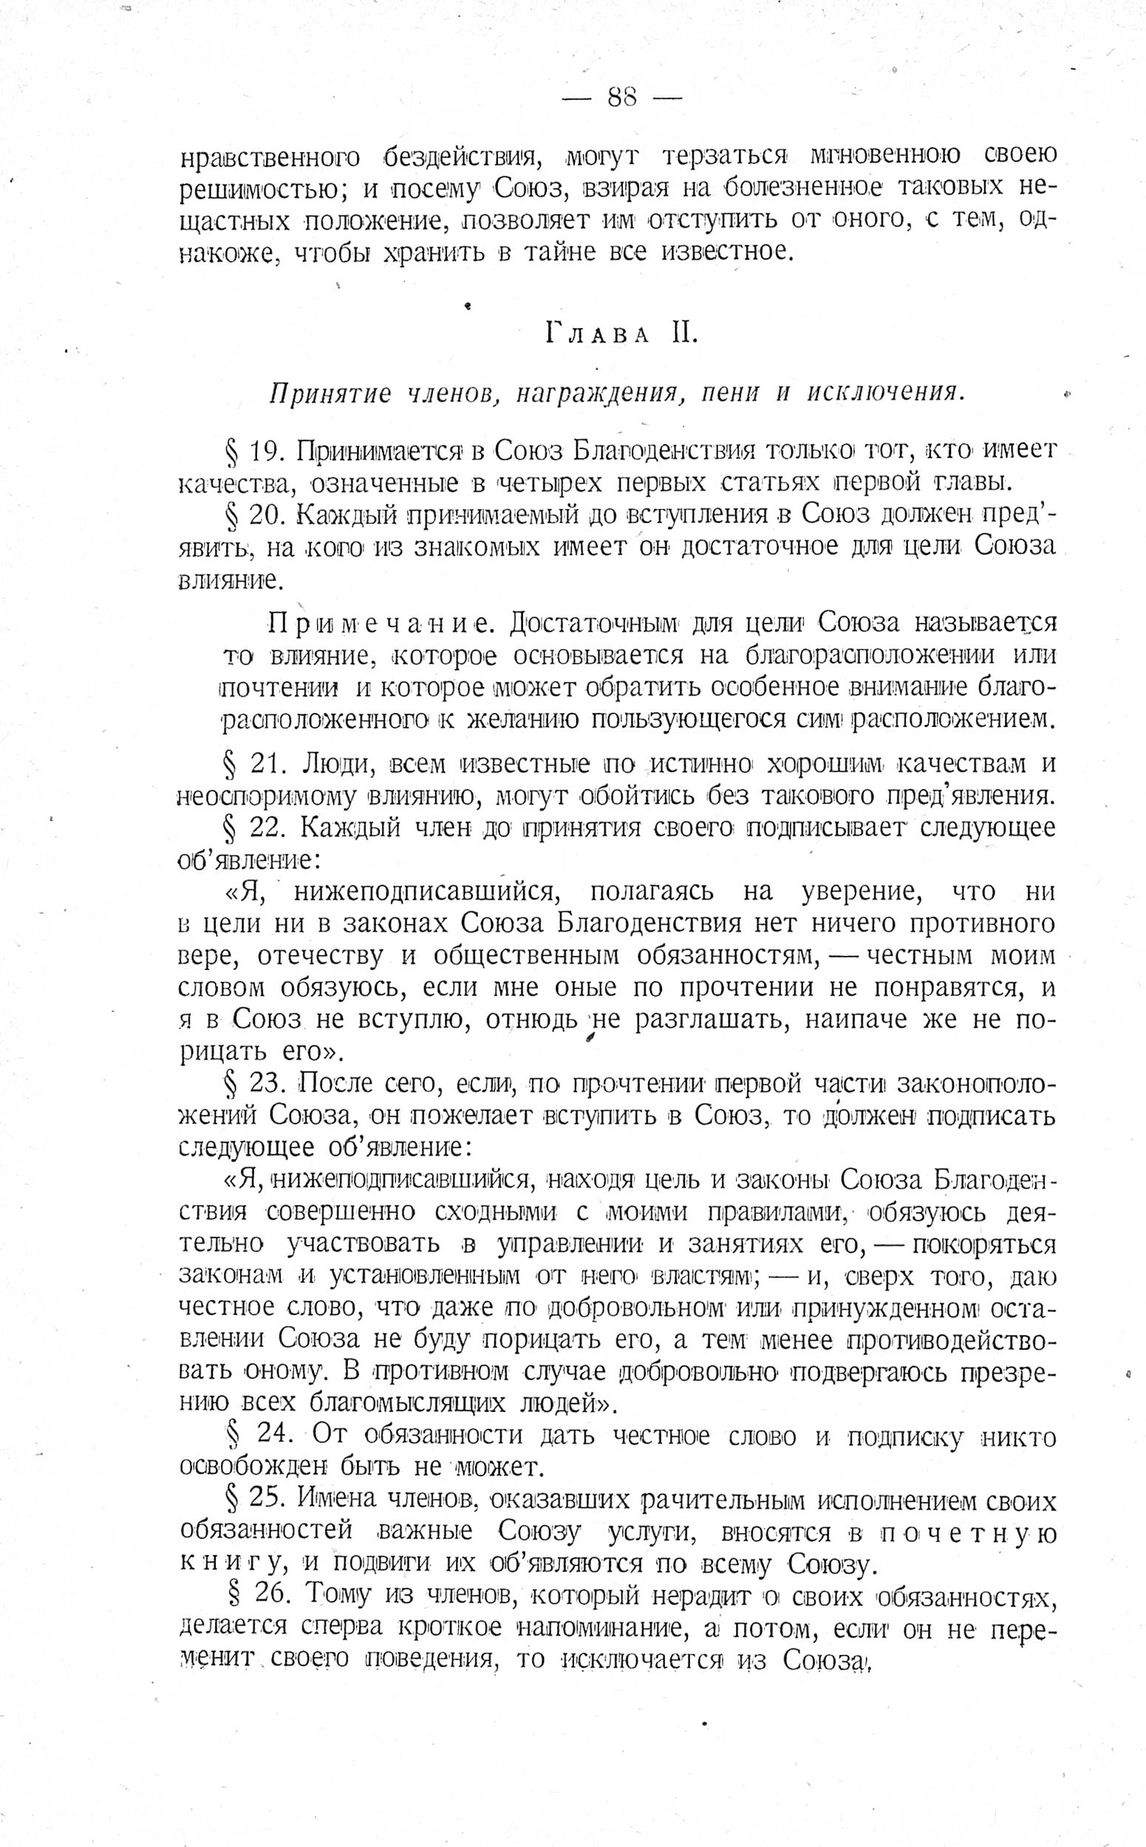 http://elib.shpl.ru/pages/625671/zooms/7